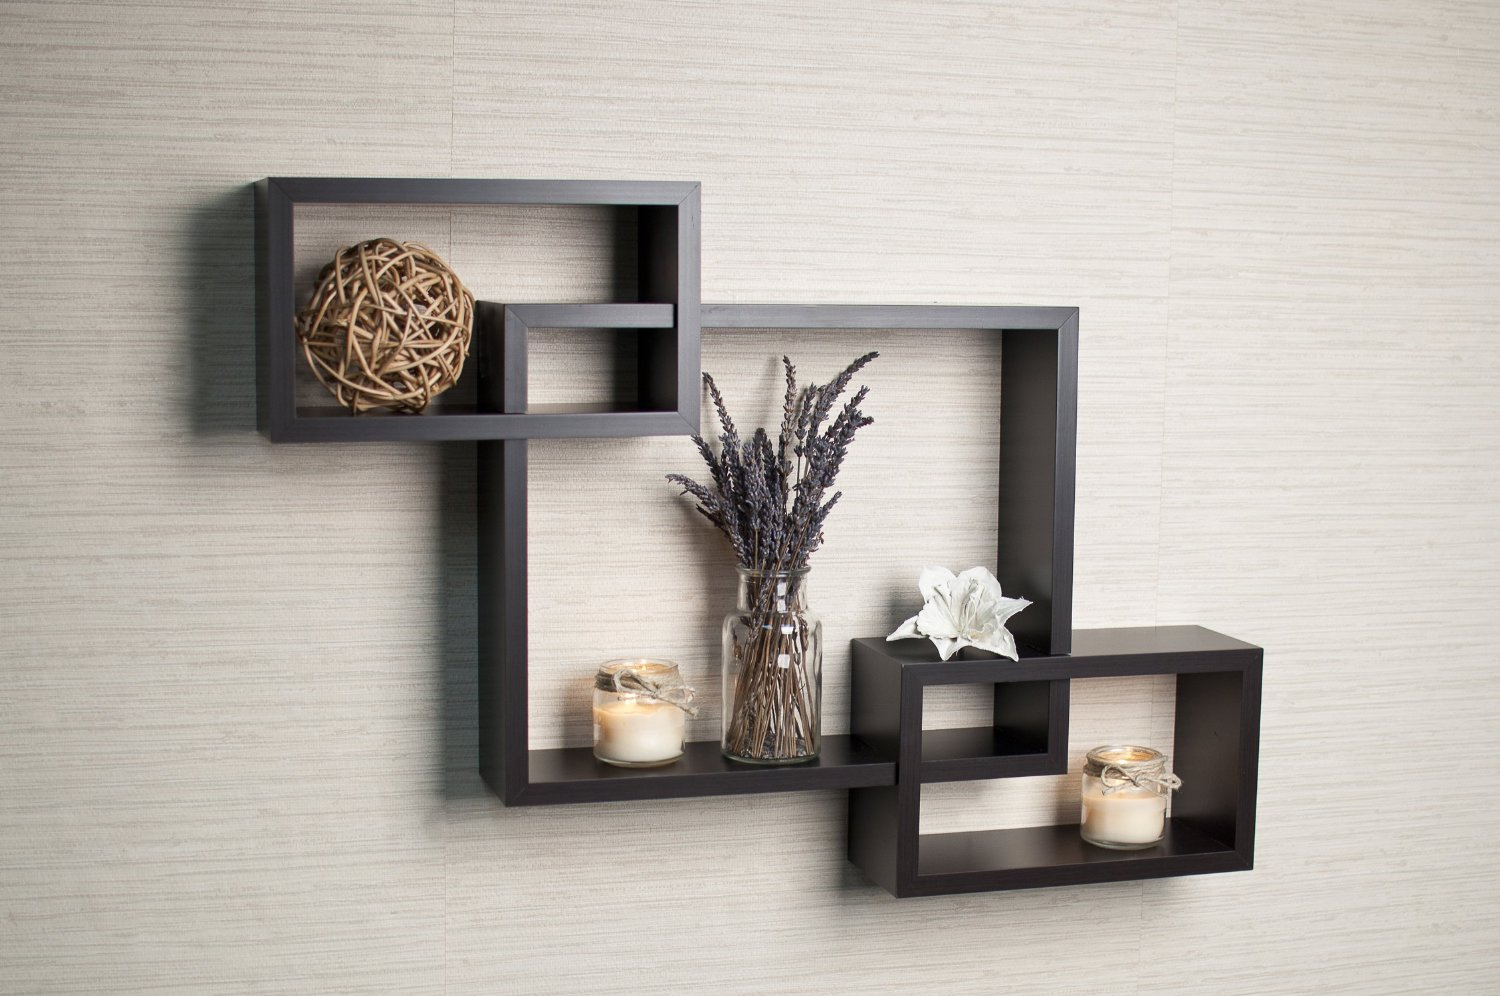 Marvelous Danya B. Intersecting Espresso Color Wall Shelf